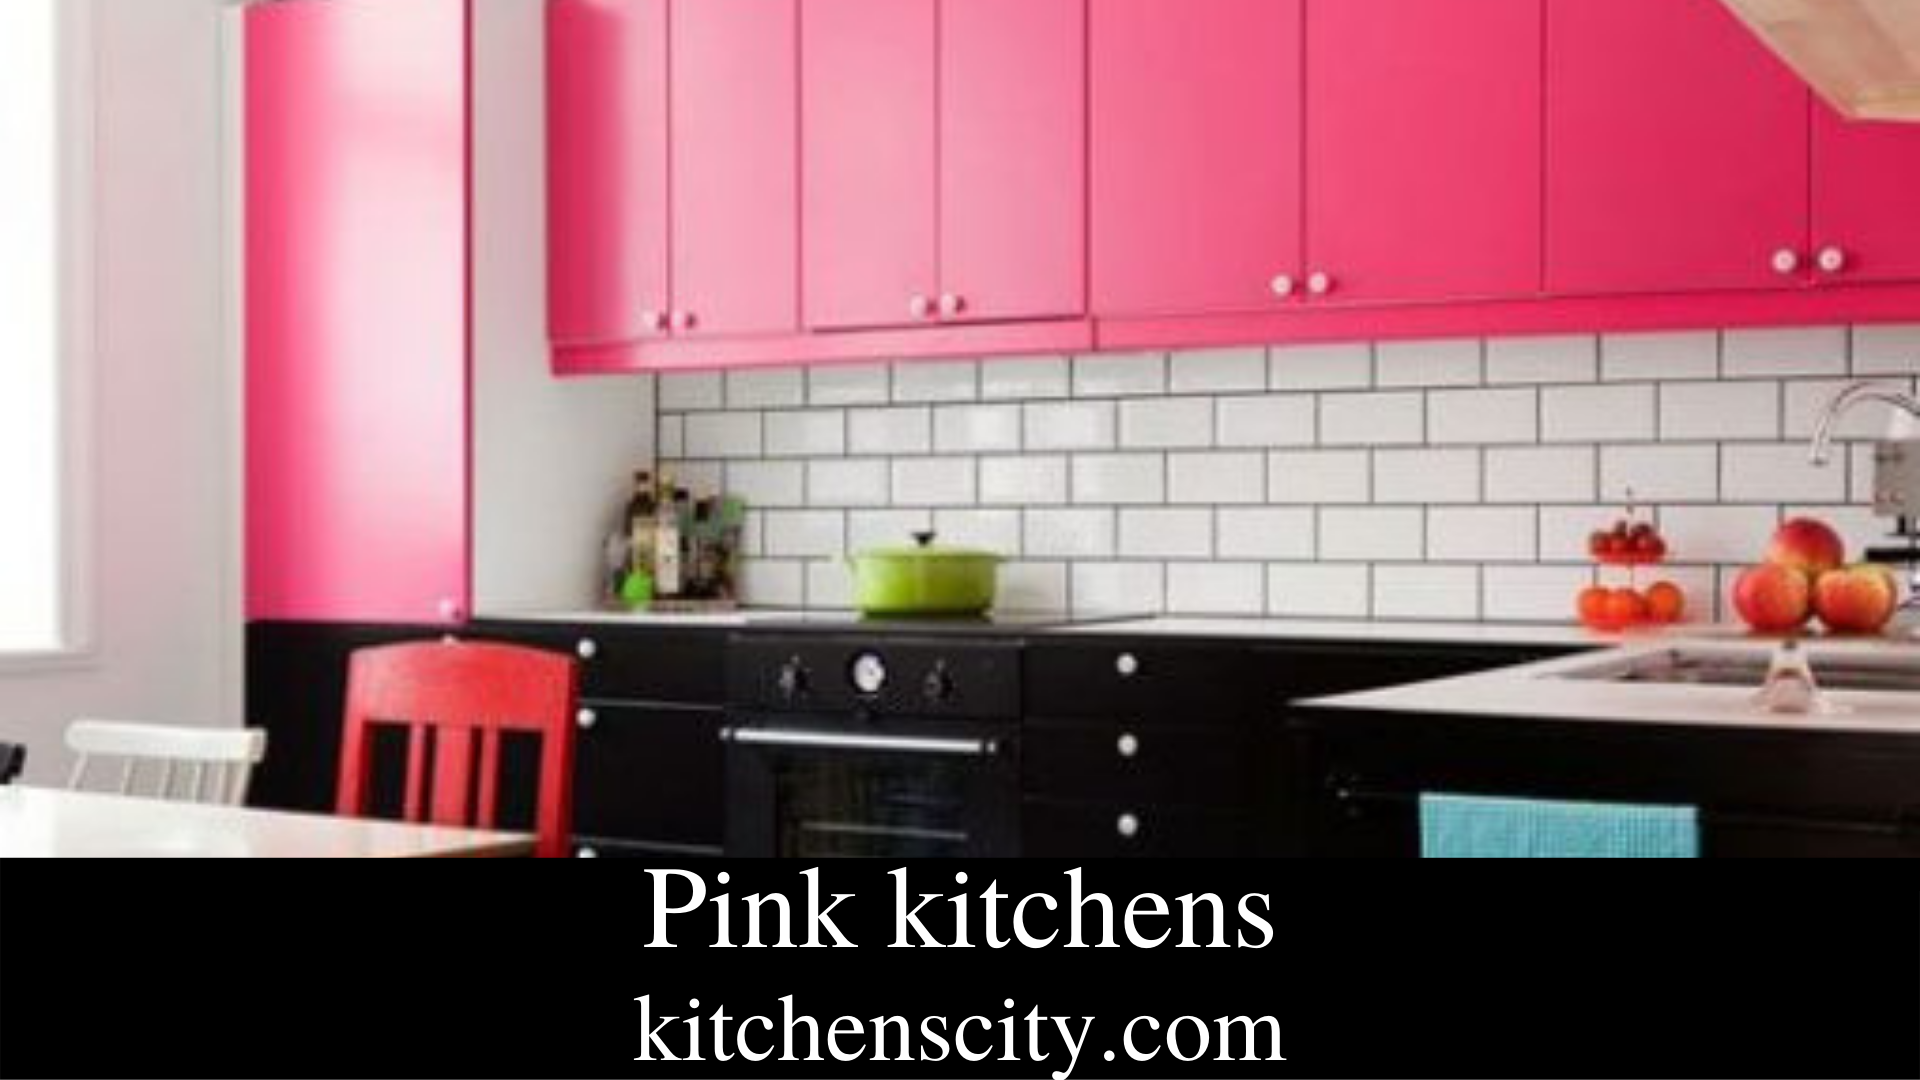 Pink kitchens_ Kitchen Trends In Rose Colors